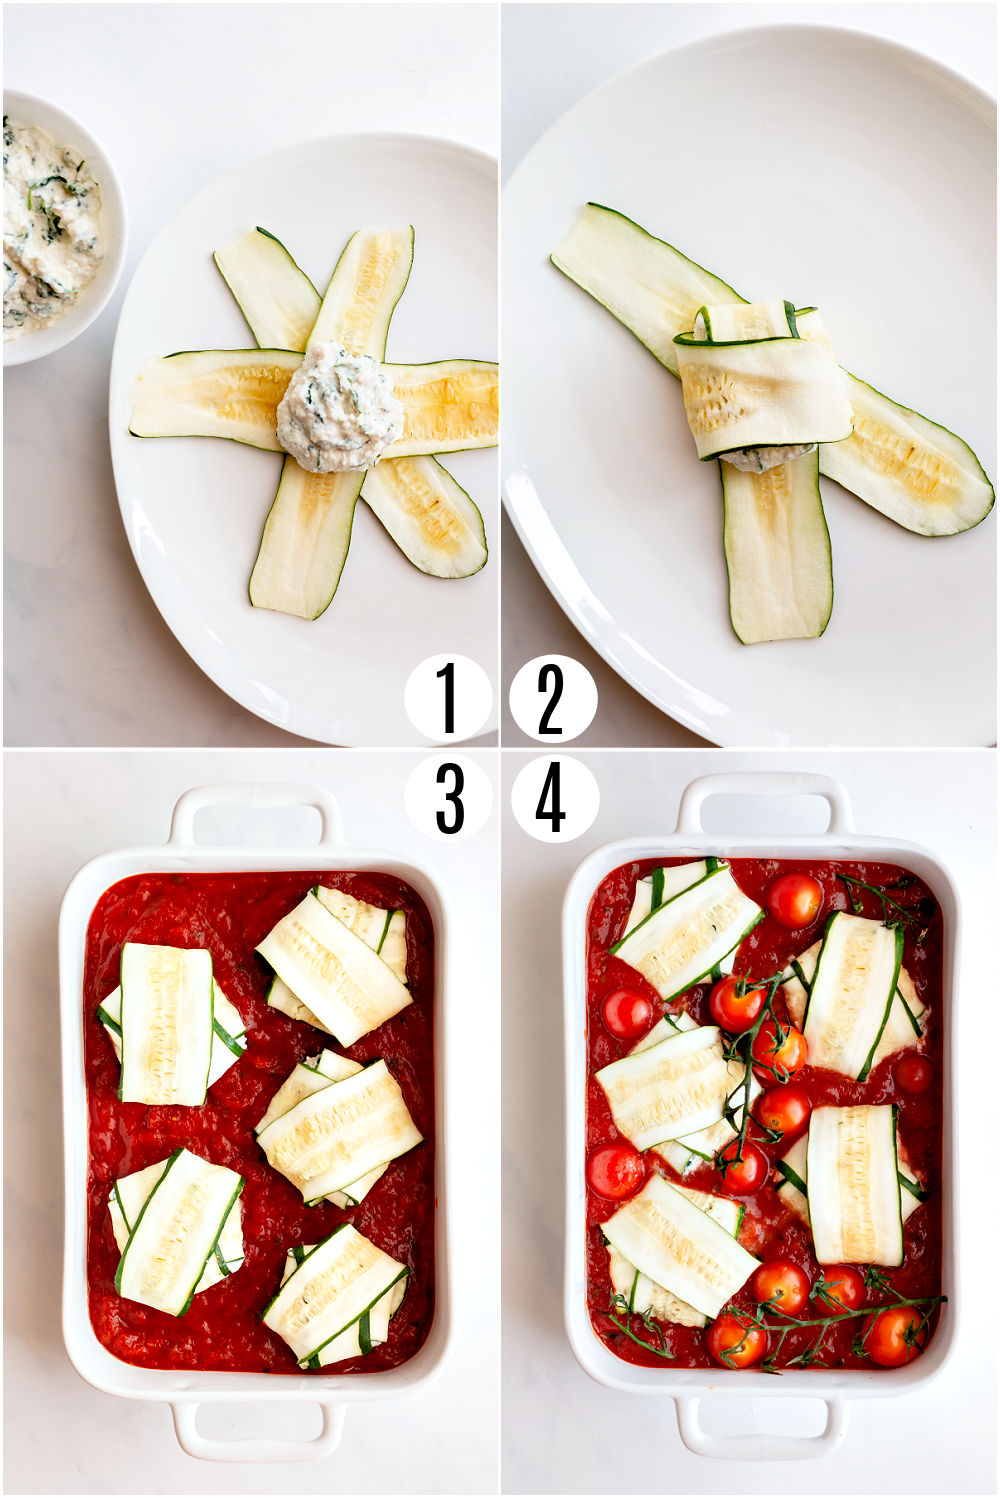 Step by step photos showing how to assemble zucchini rollups.